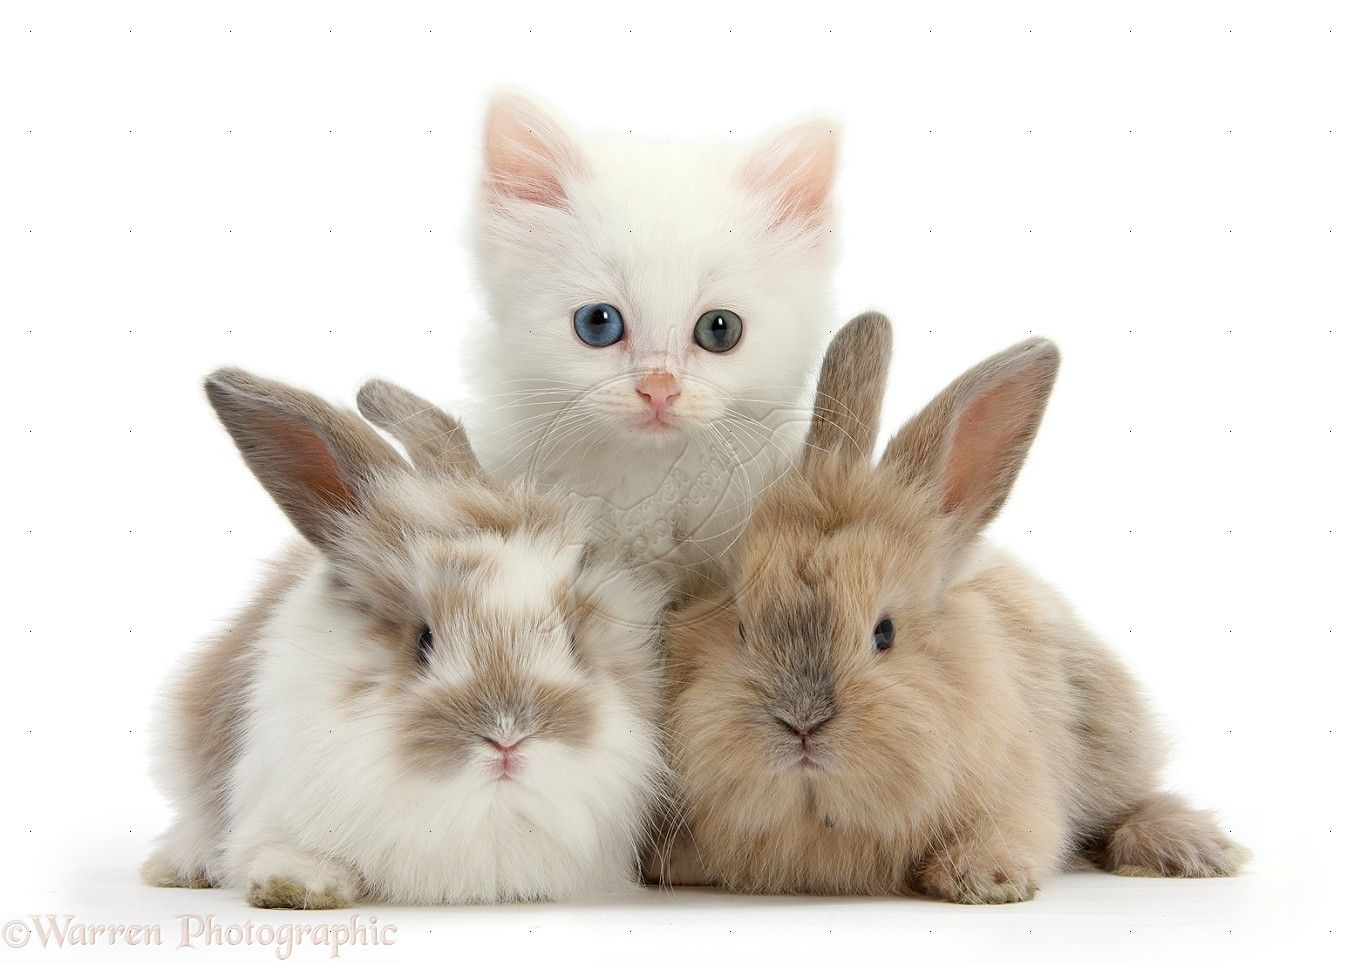 White Baby Bunnies Google Search Cute Puppies And Kittens Cute Baby Puppies Baby Cats